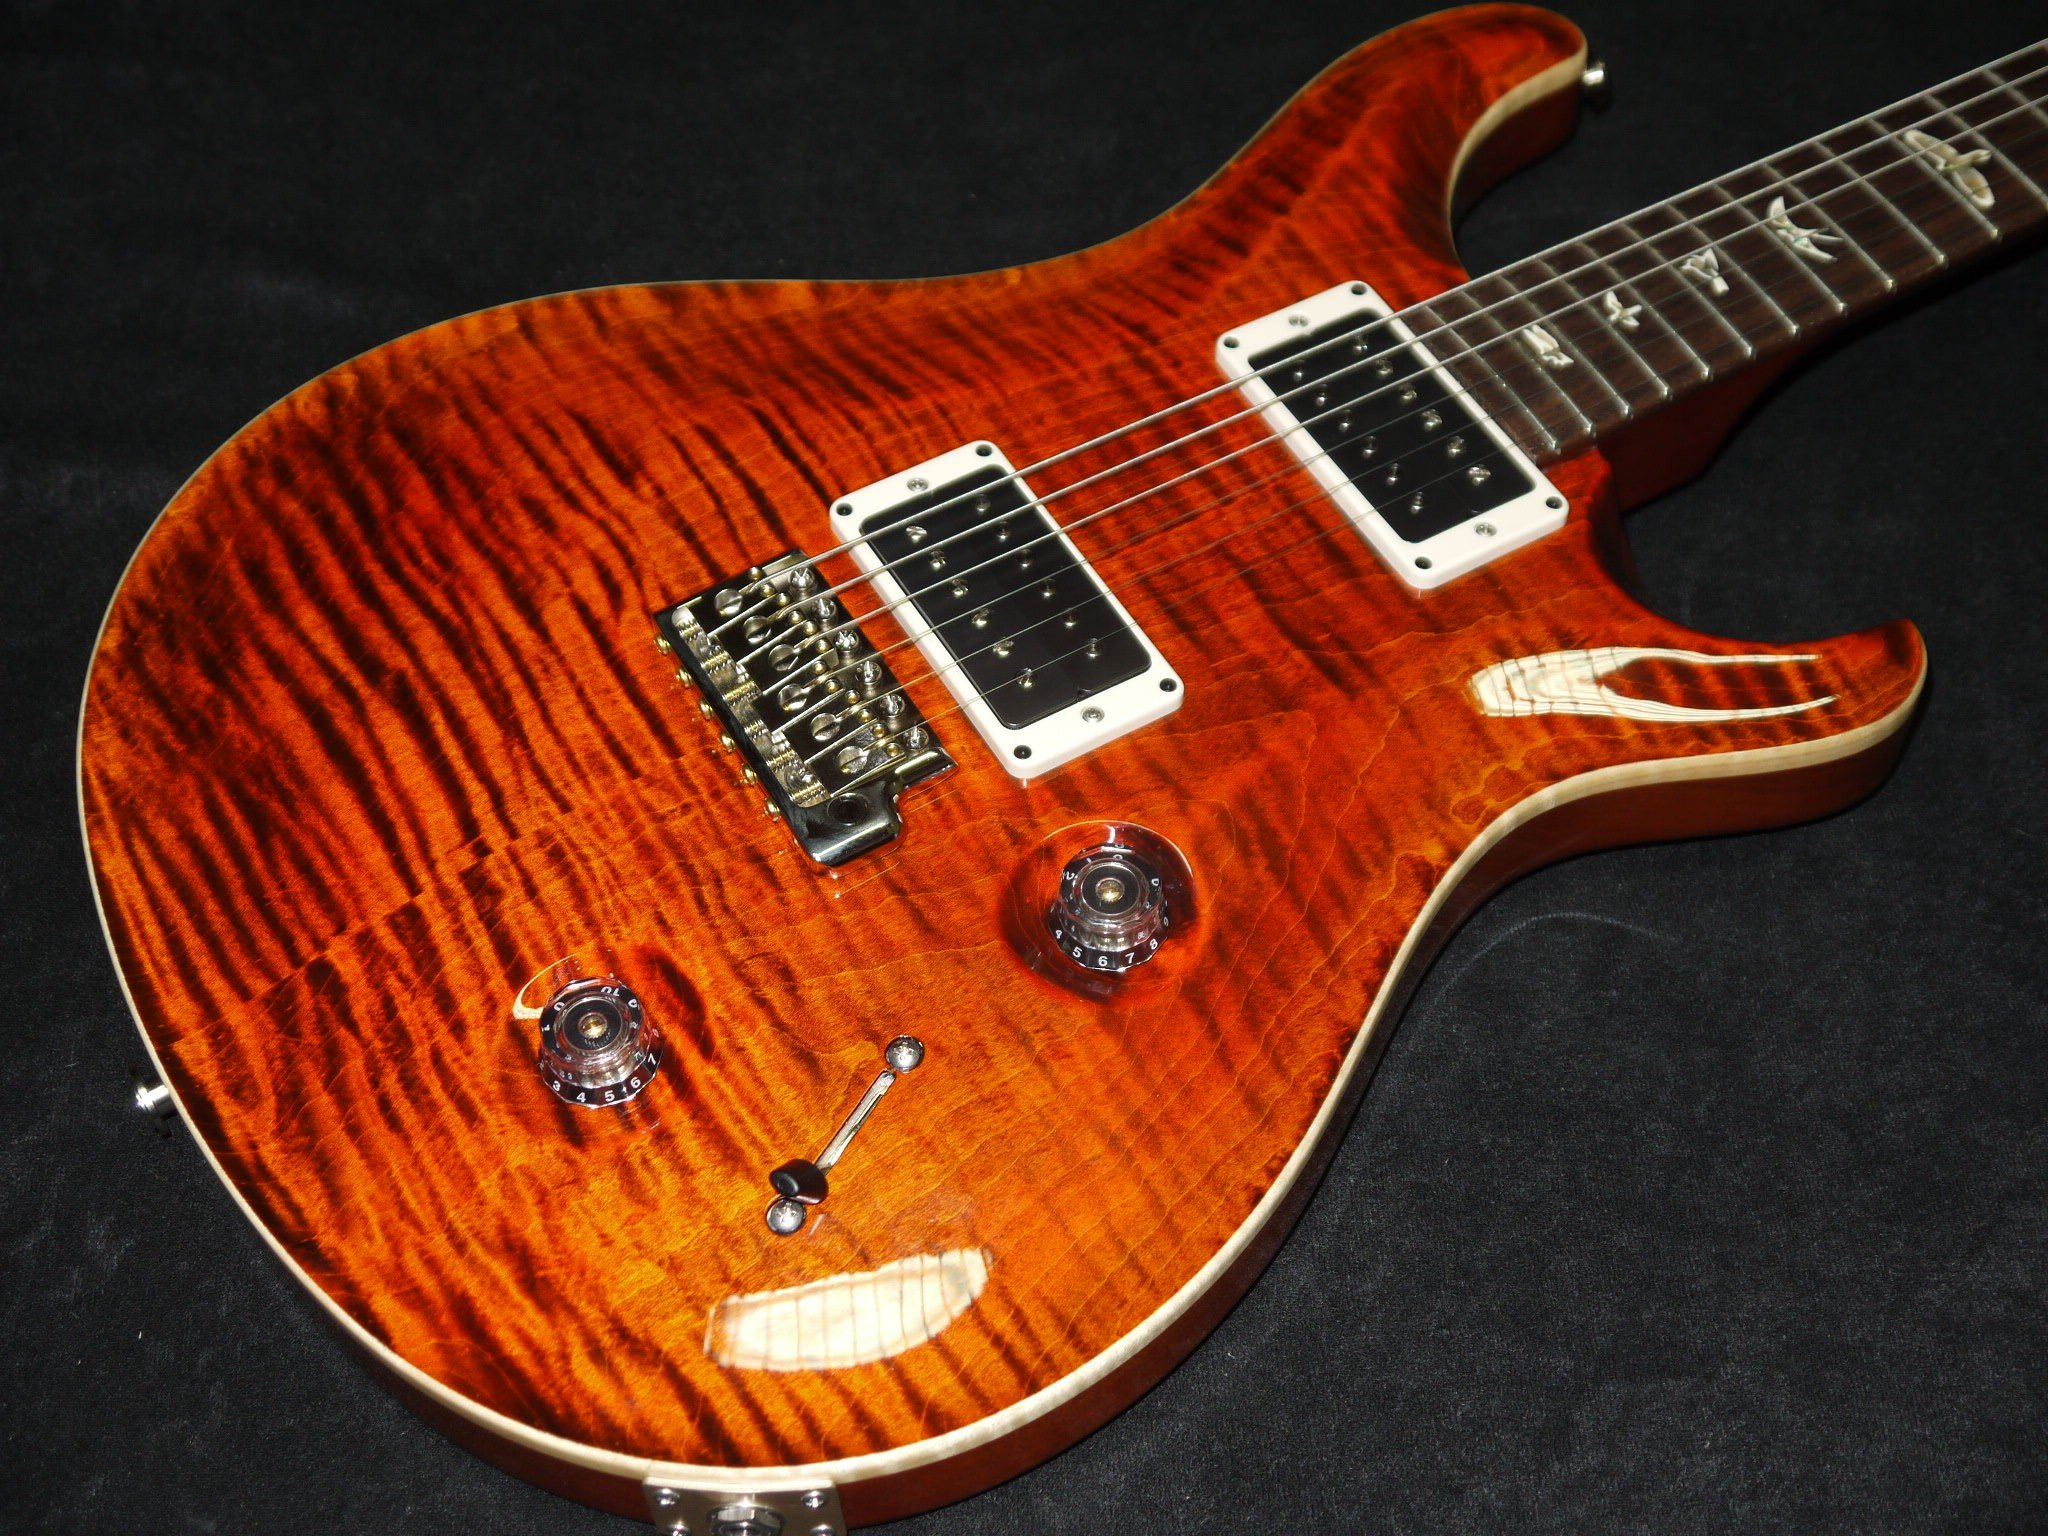 PRS Paul Reed Smith Custom 22 2010s Orange Tiger Guitar For Sale 2048x1536